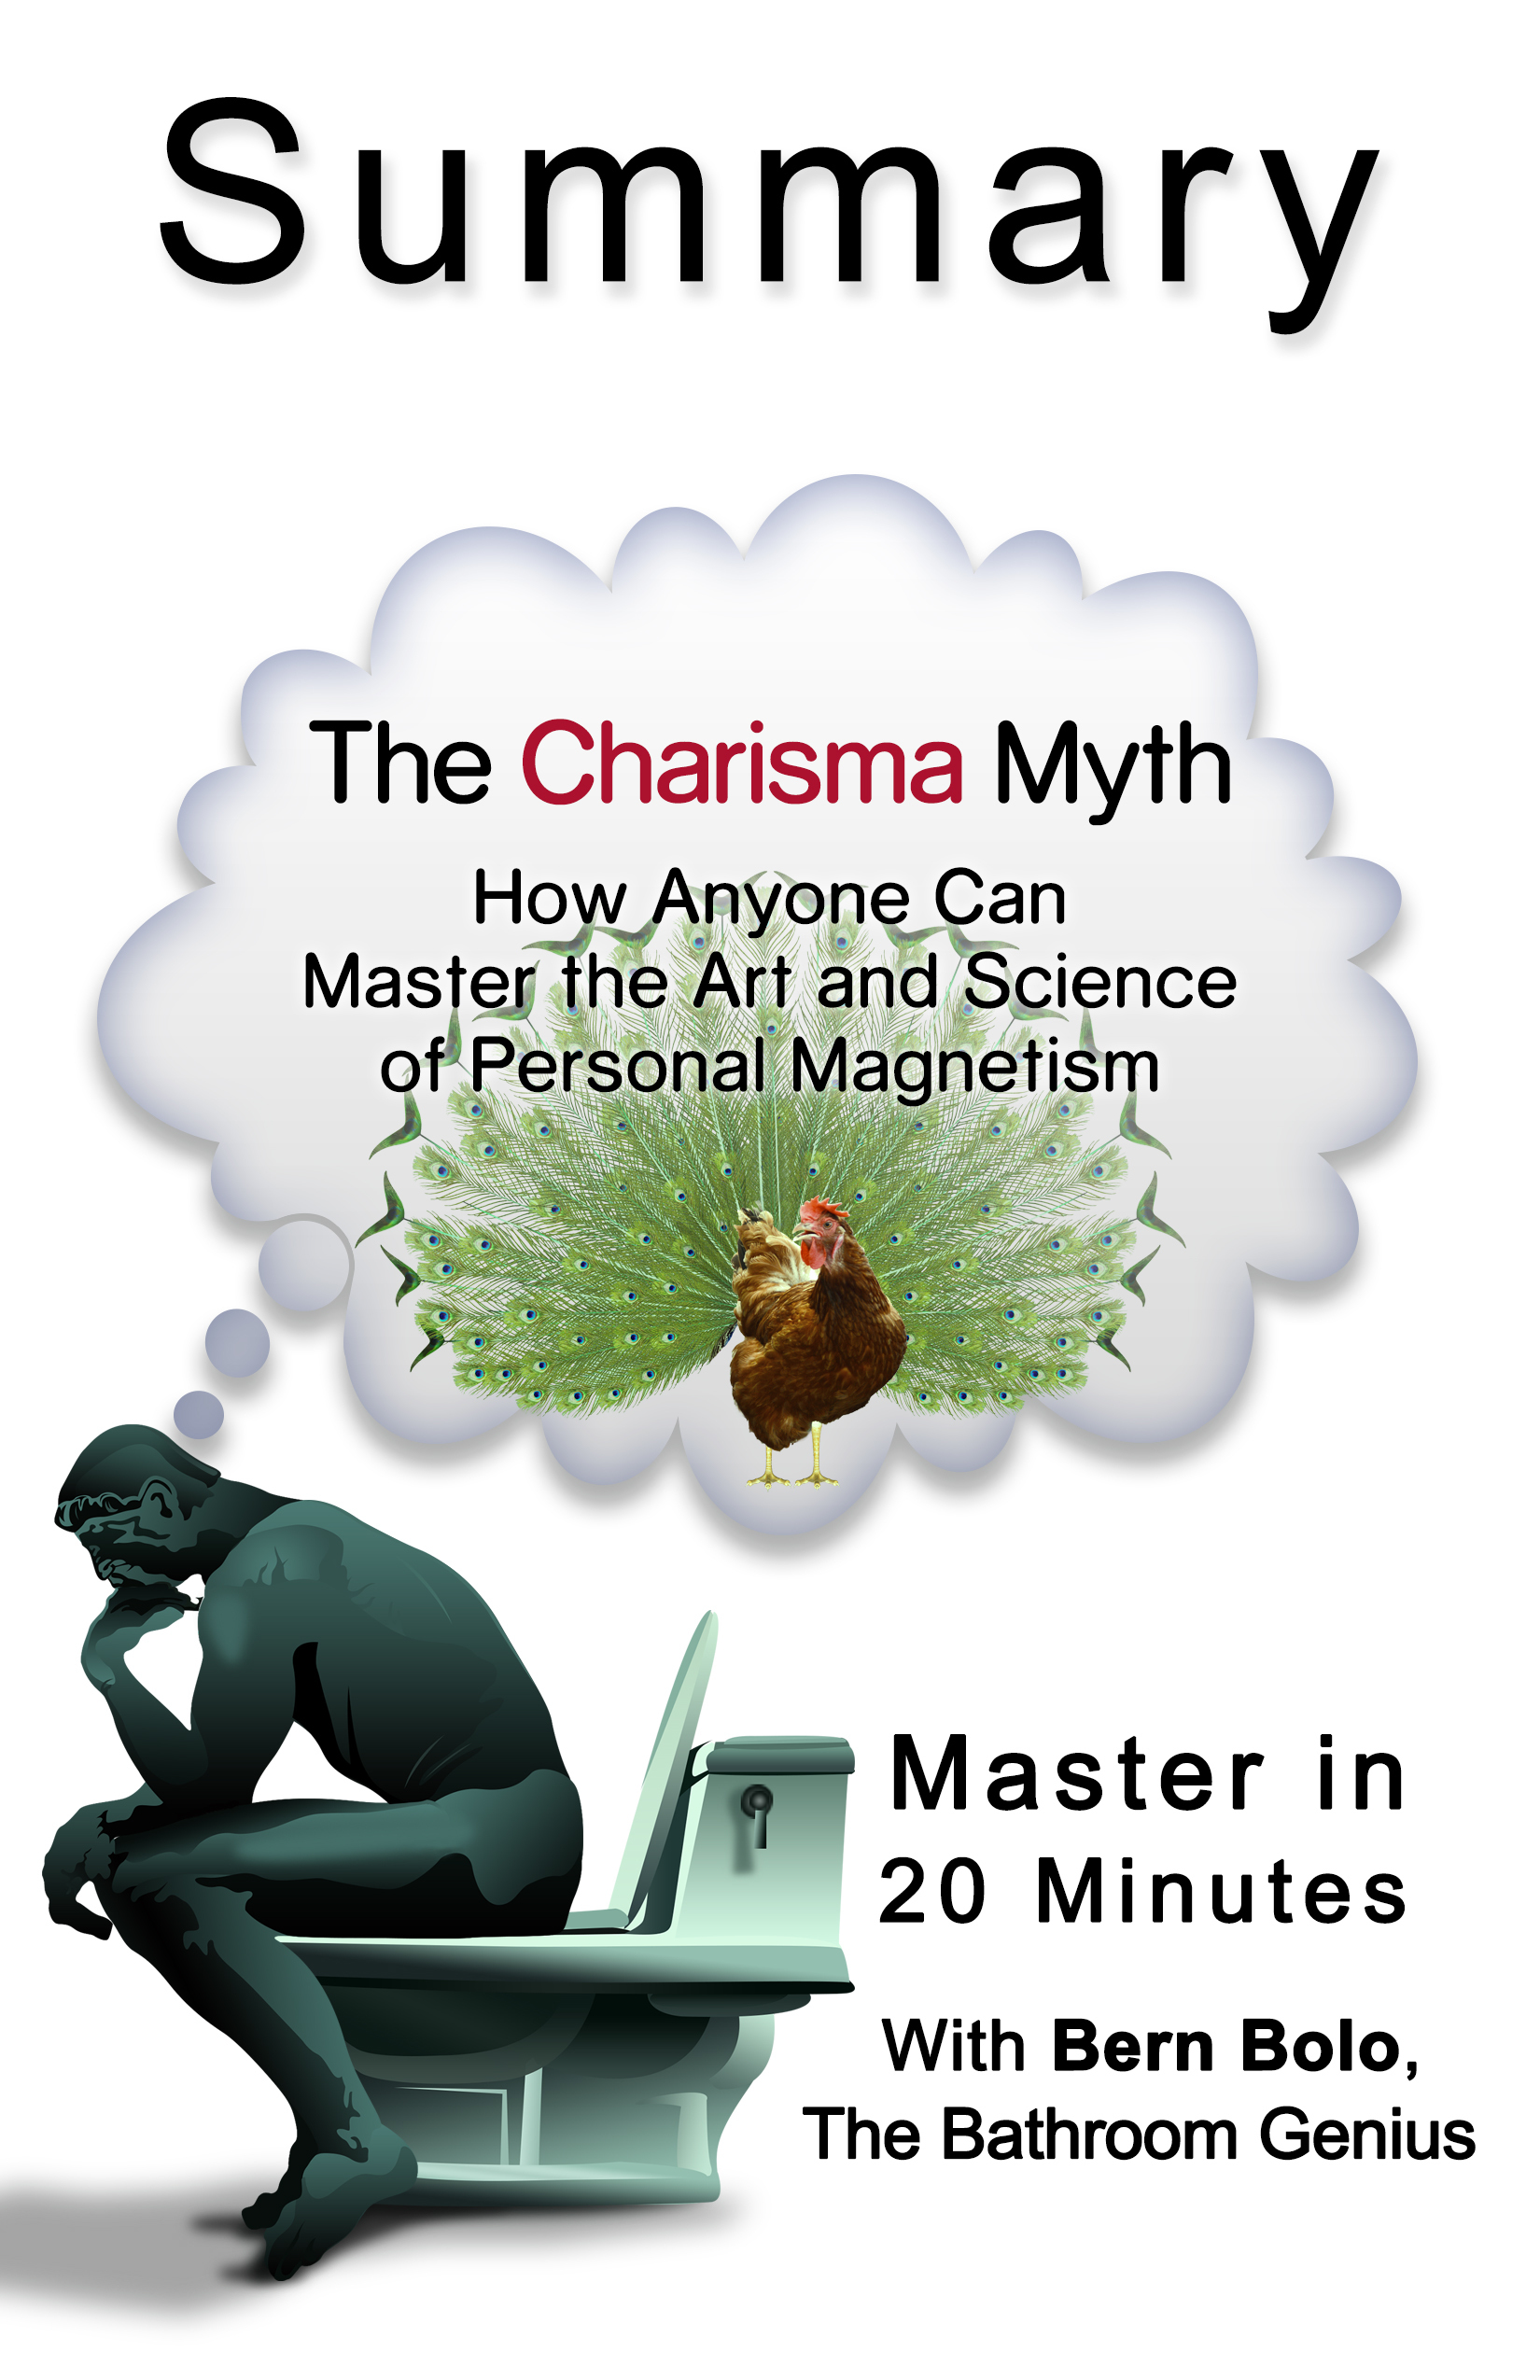 The Charisma Myth: How Anyone Can Master the Art and Science of Personal Magnetism: A 20-Minute Bathroom Genius Summary